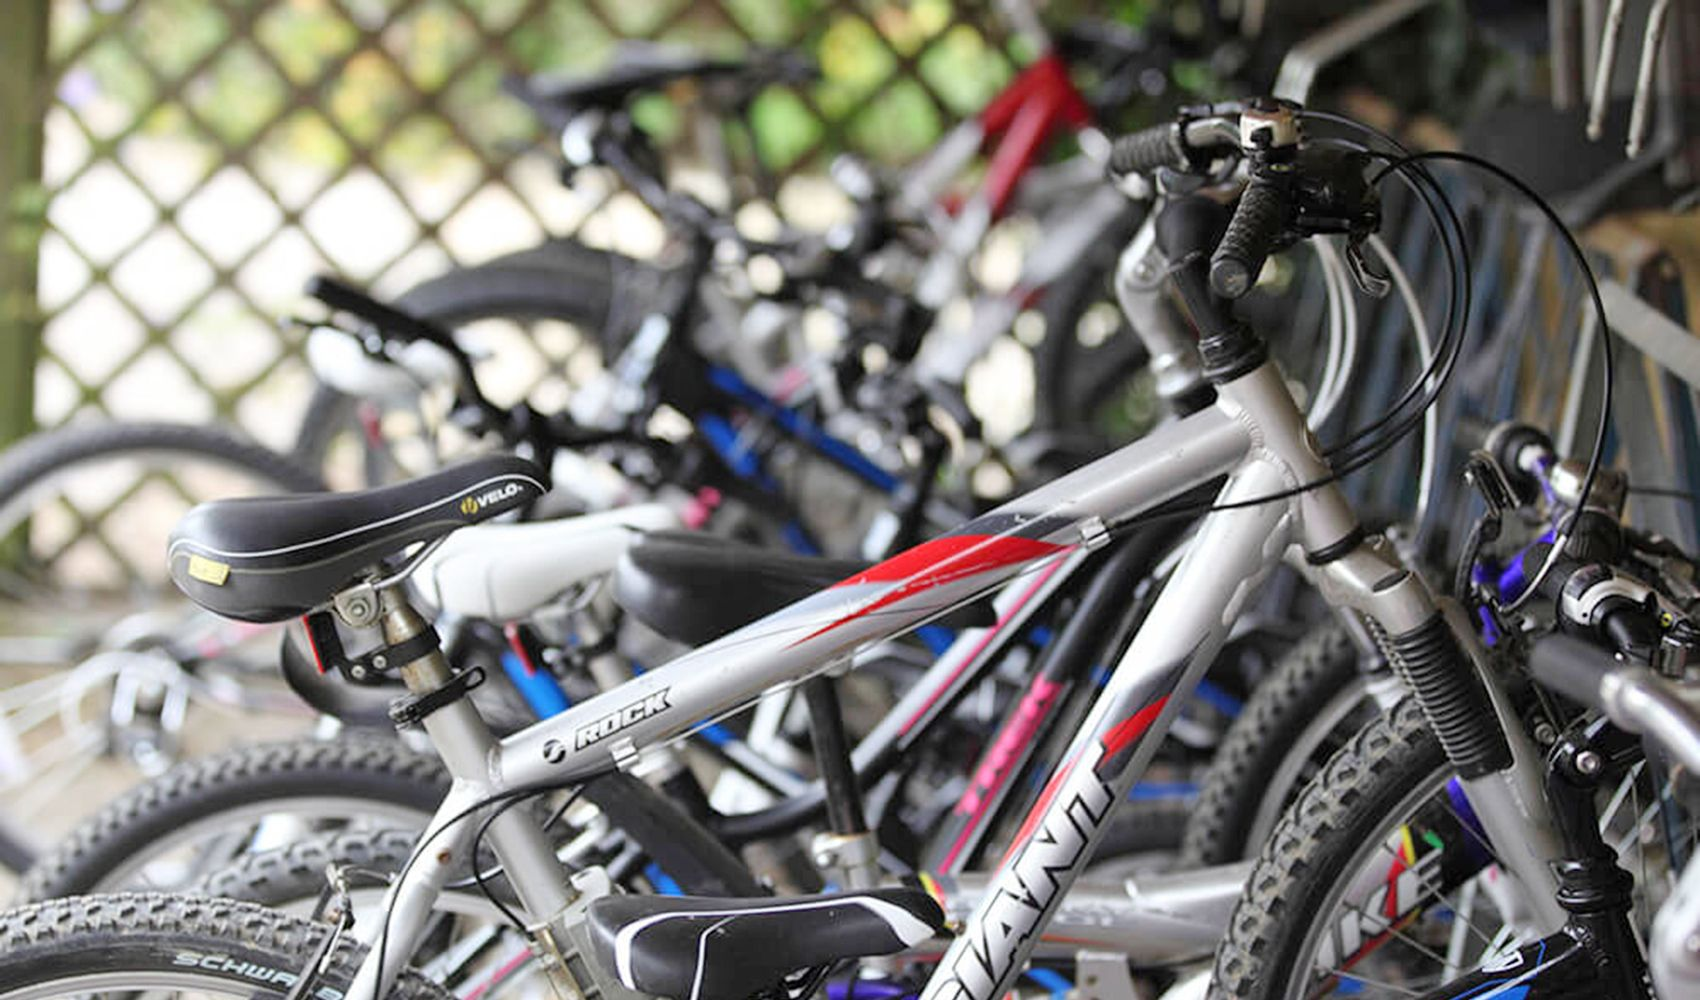 Guests will also find bikes for adults and children